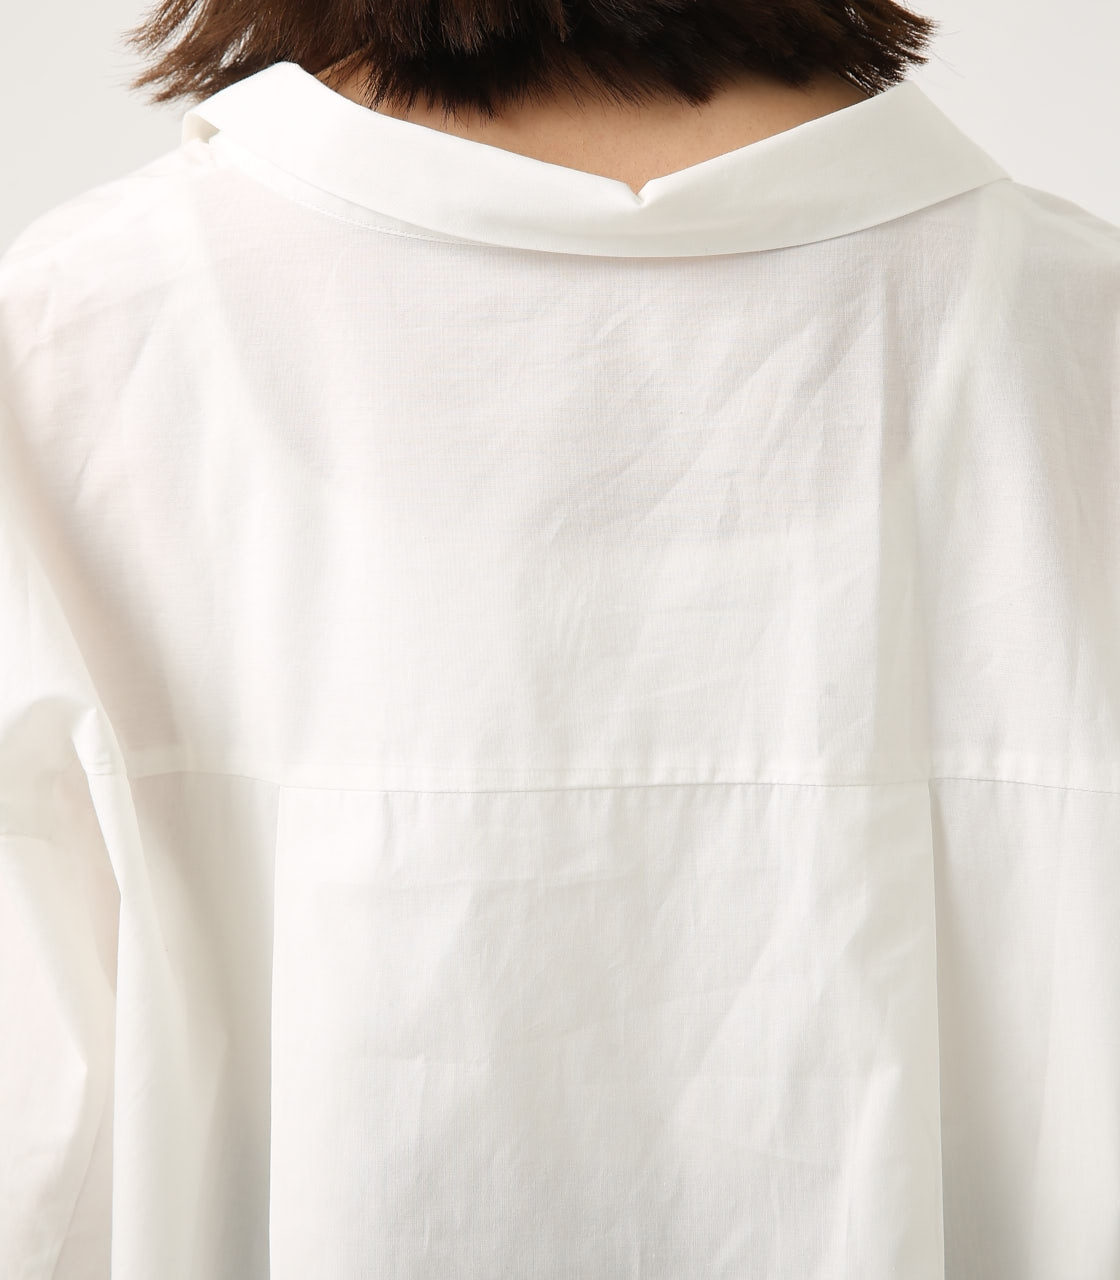 【AZUL BY MOUSSY】LOOSE SKIPPER SHIRT 詳細画像 O/WHT 9